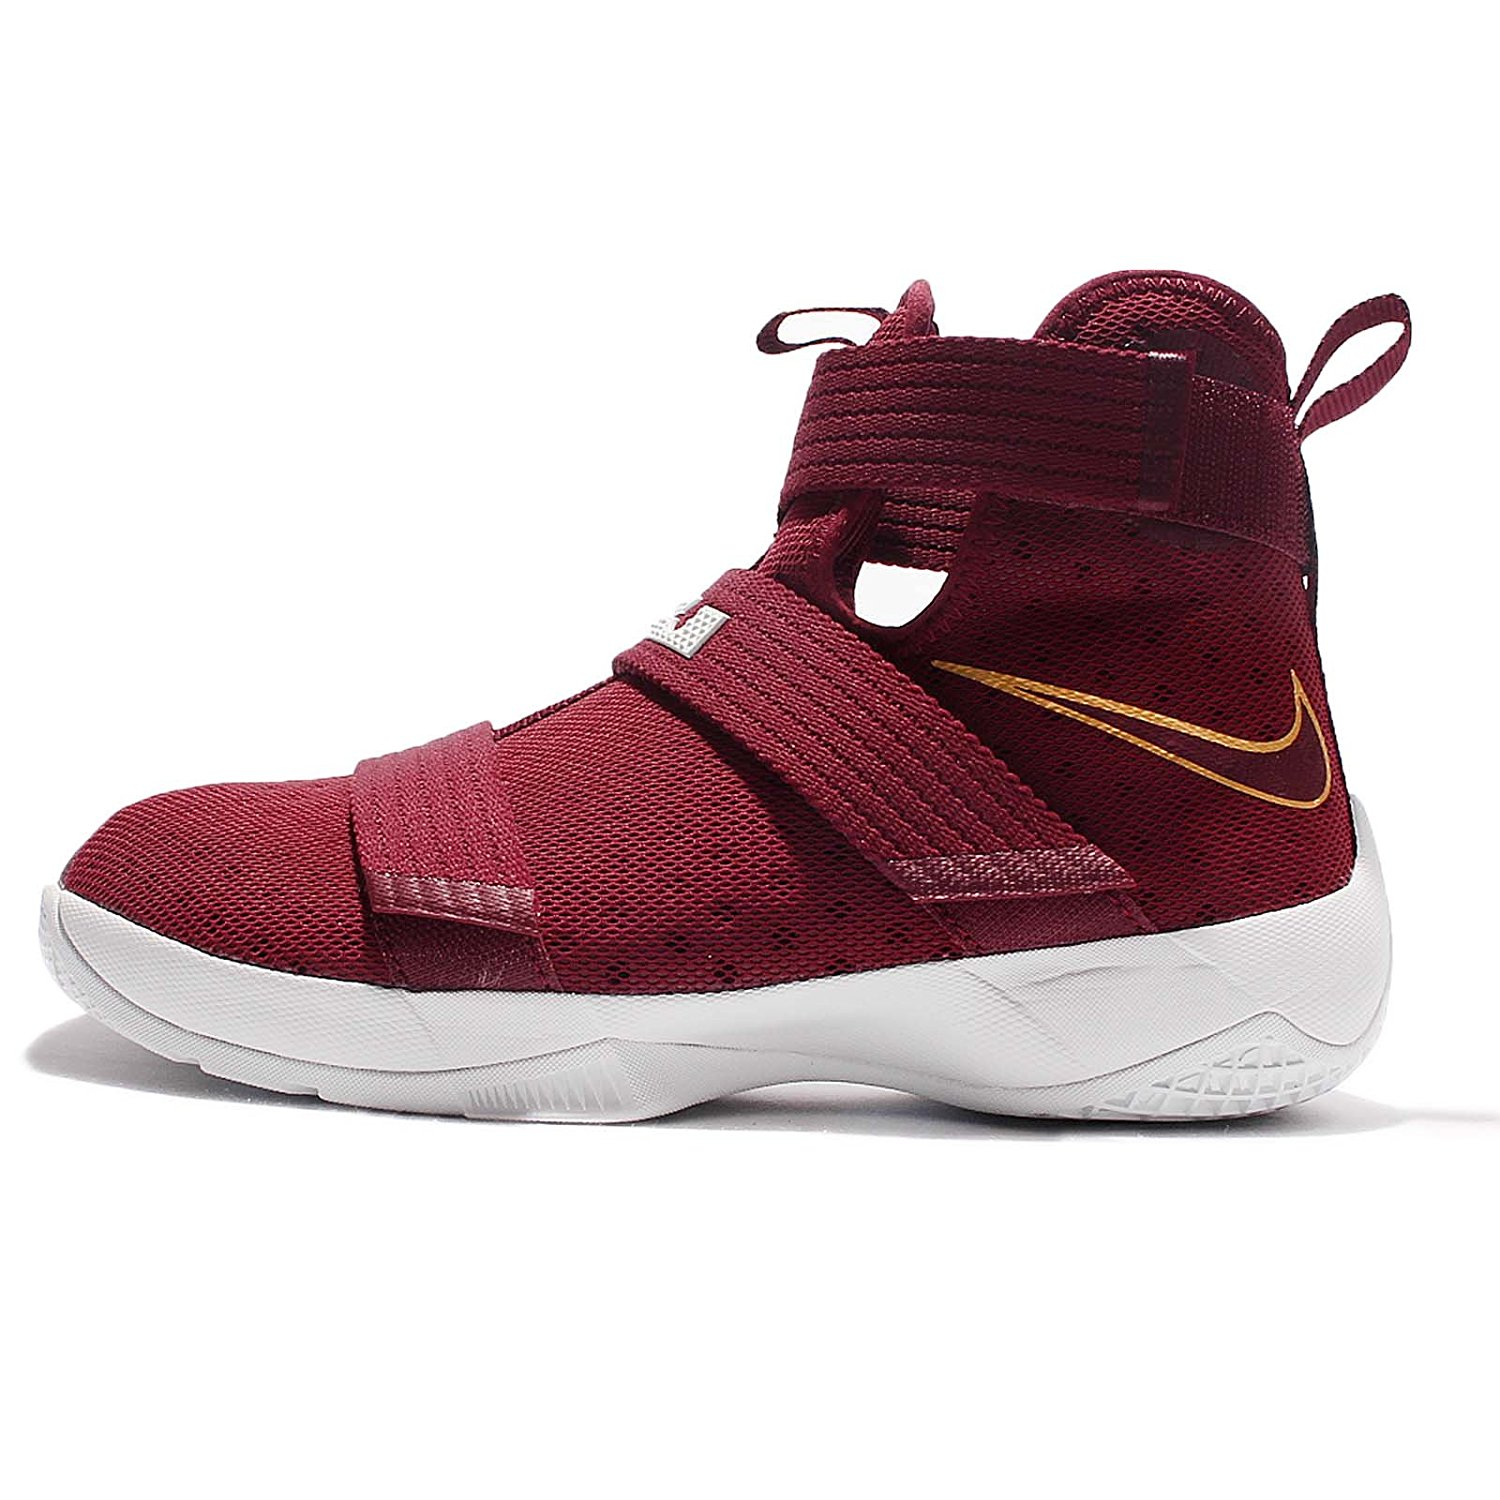 a1f4ff6810e Get Quotations · Nike Kid s Lebron Soldier 10 GS